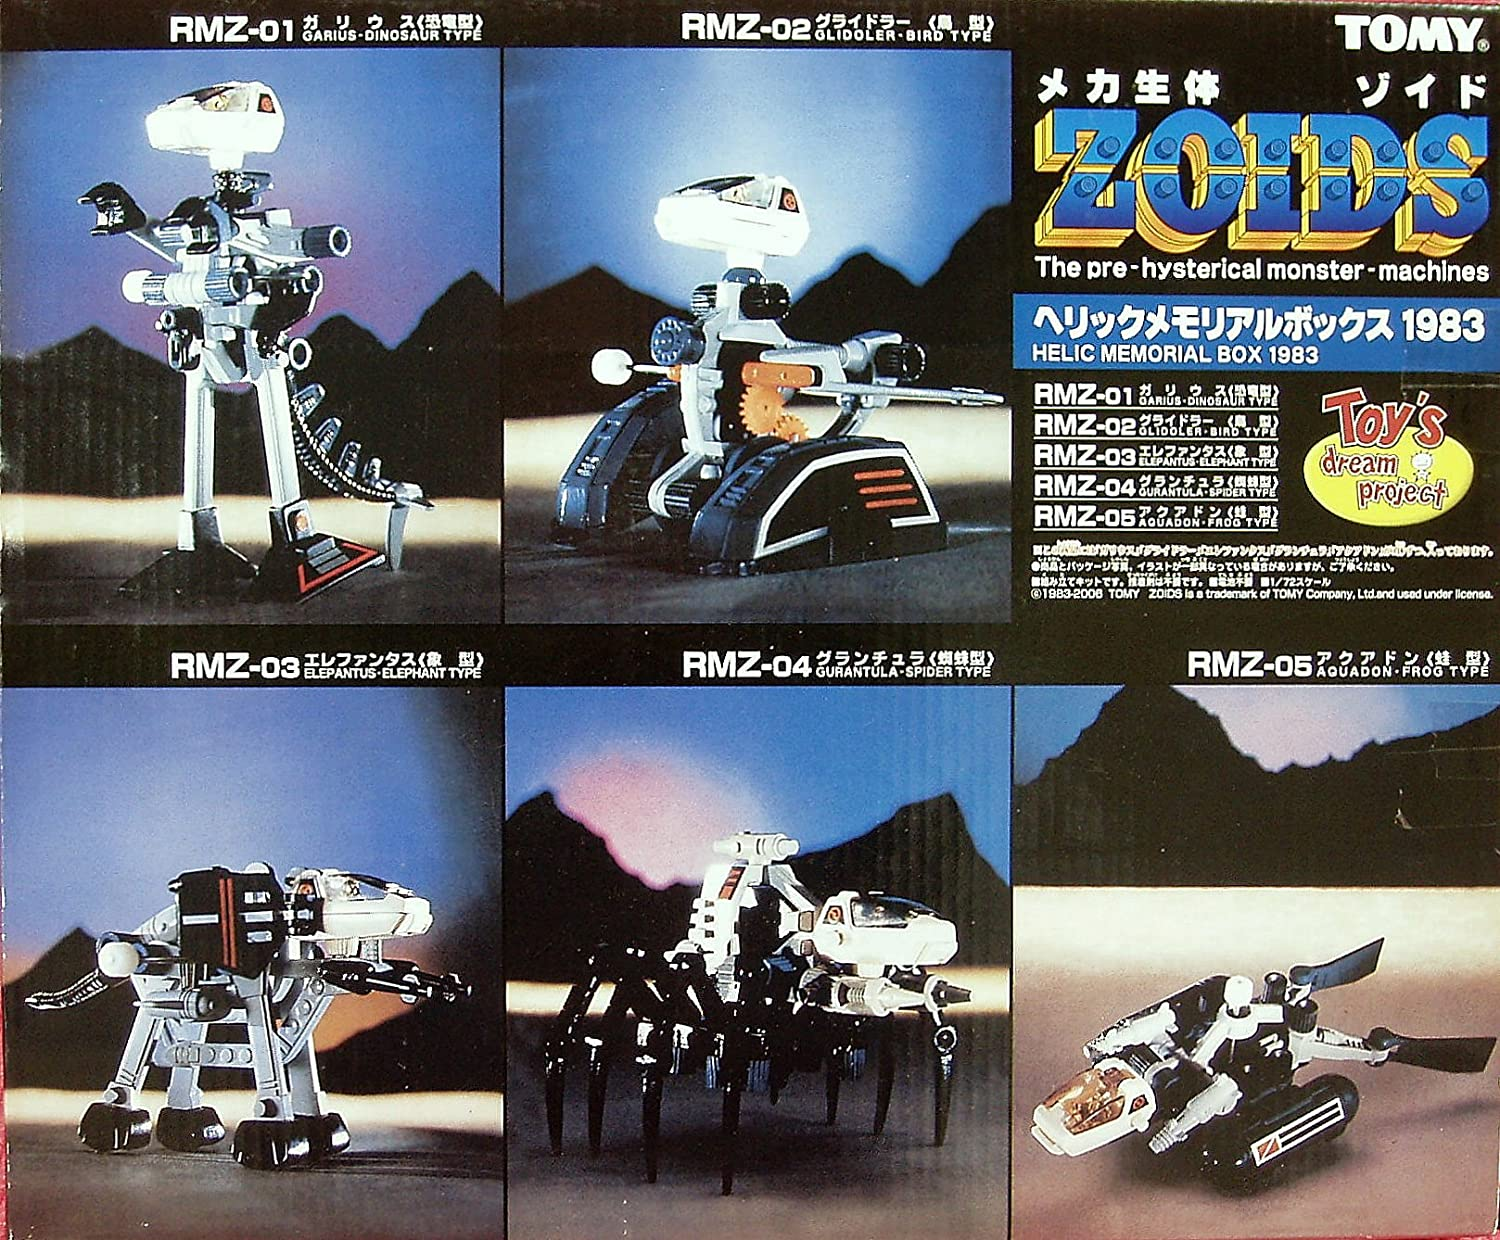 ZOIDS   mechanical biological Zoids Herrick Memorial Box 1983 (Japan import   The package and the manual are written in Japanese)